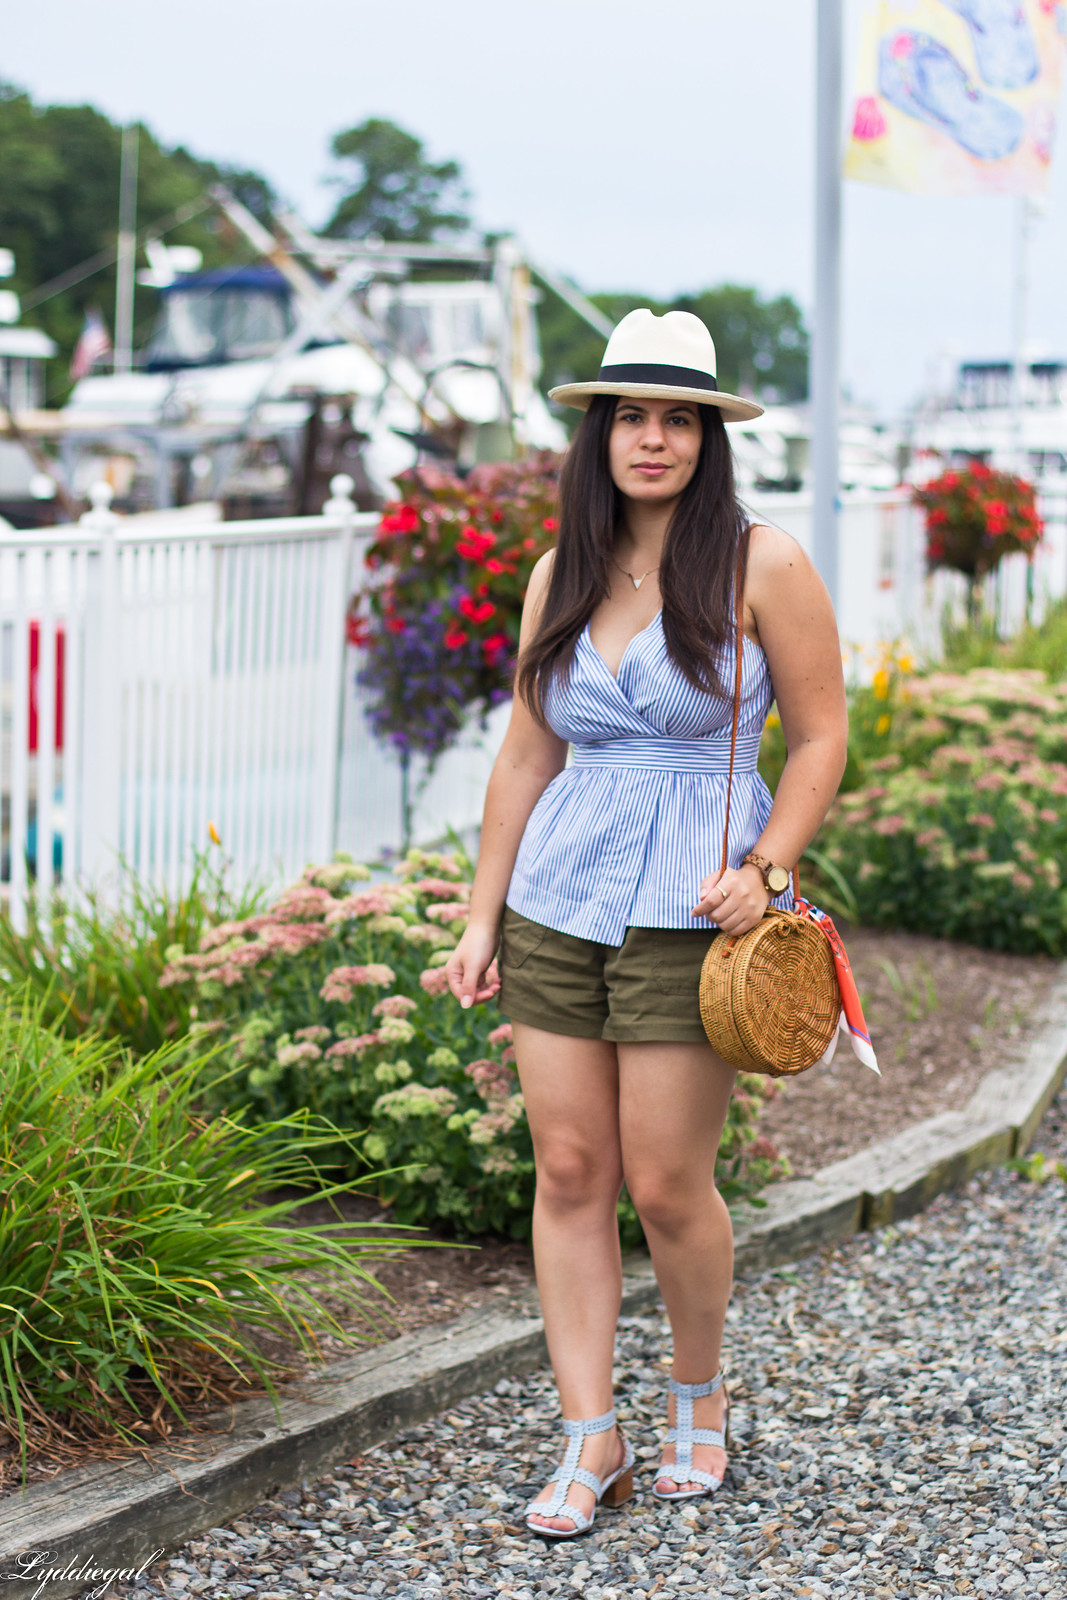 striped peplum top, shorts, panama hat, straw bag-1.jpg